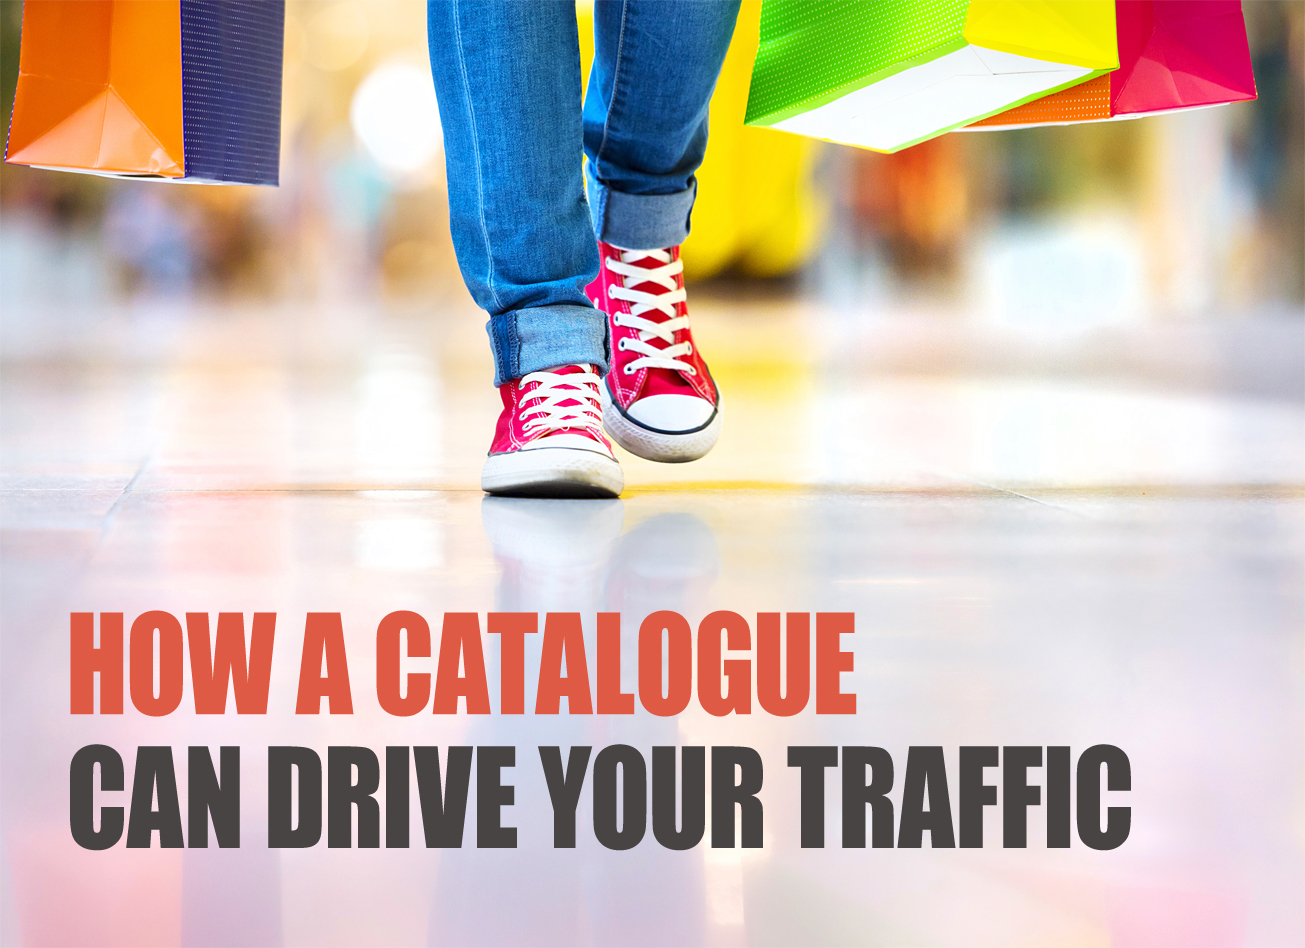 catalogue traffic